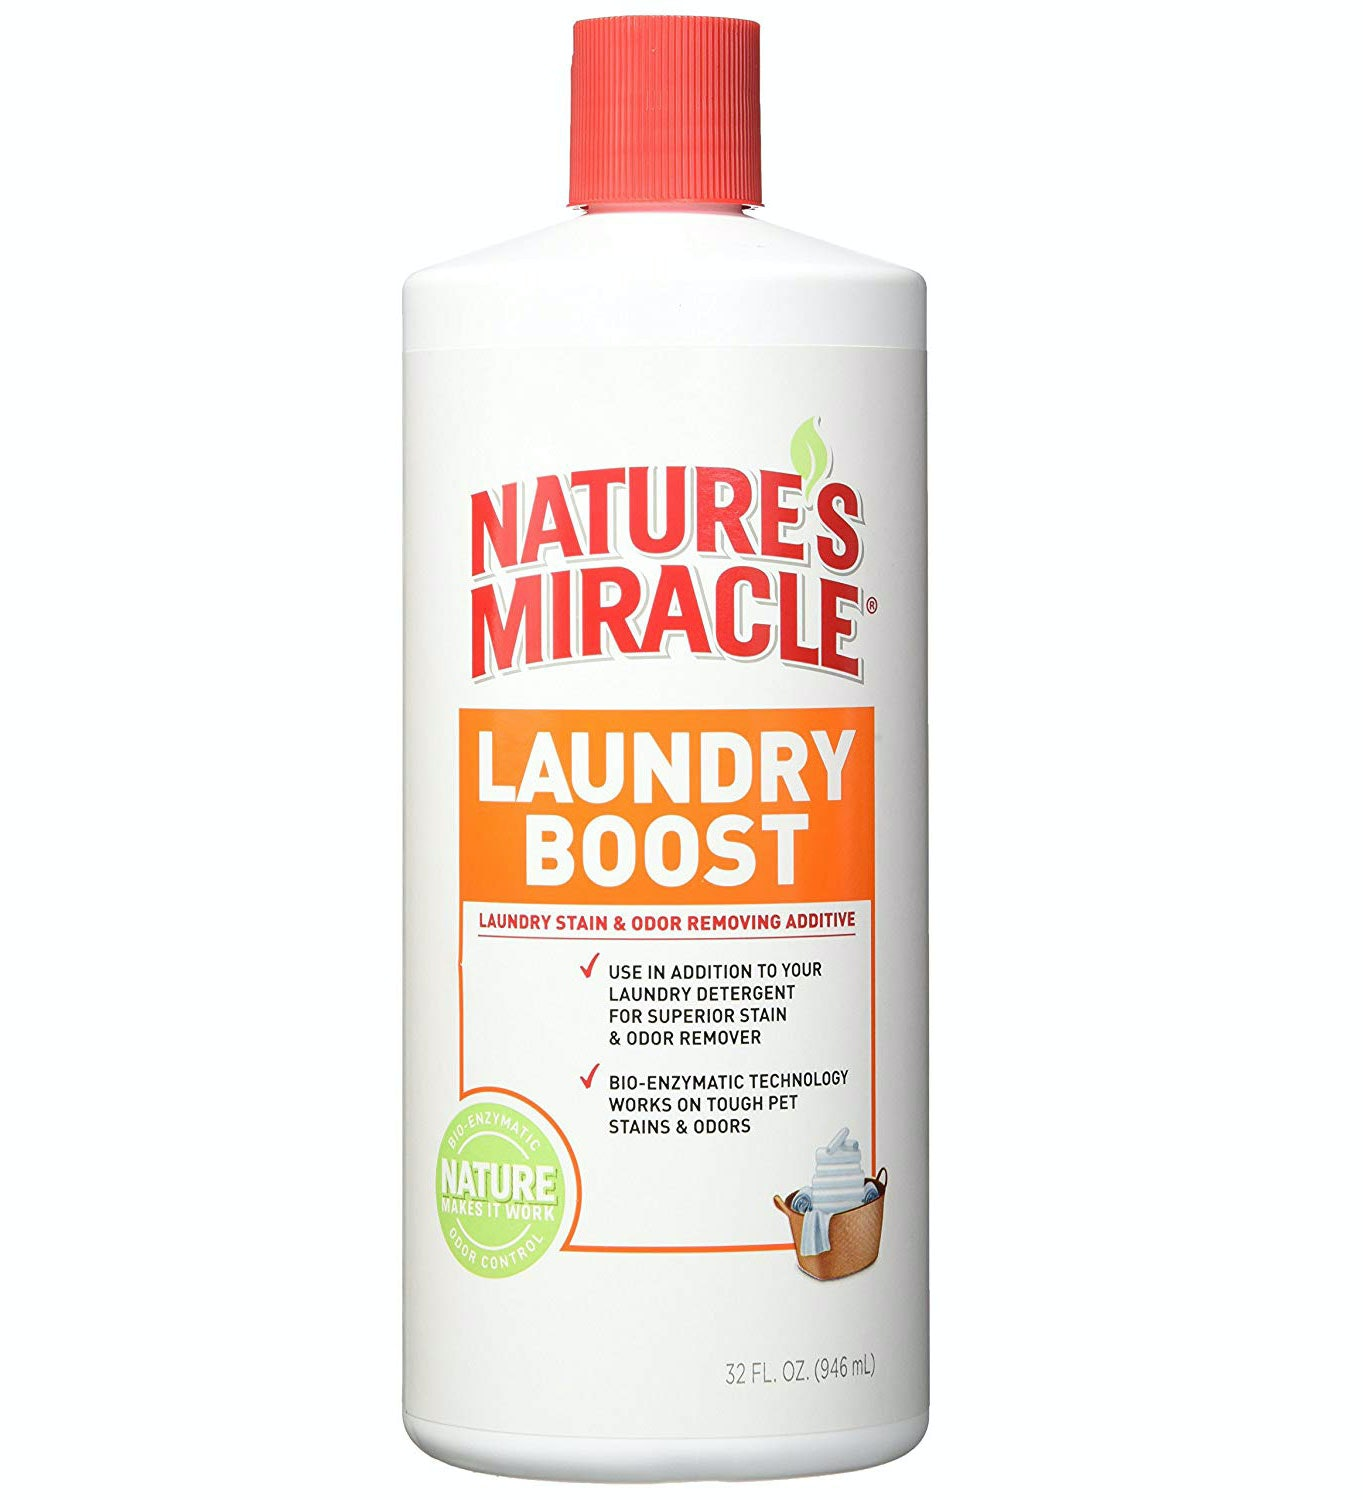 The 3 Best Laundry Detergents For Odors